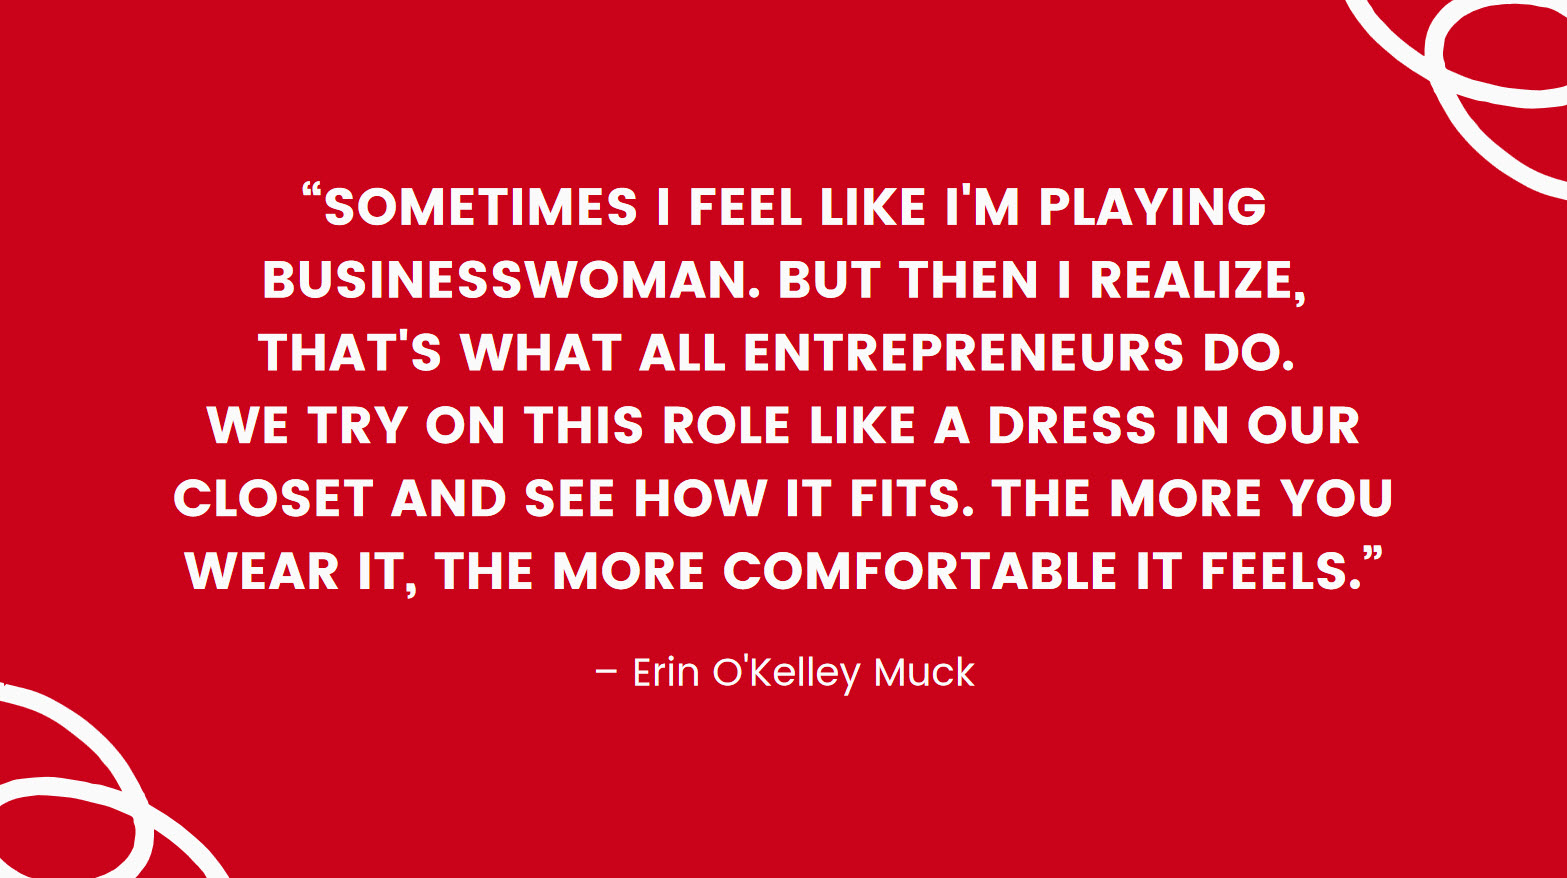 """Quote: """"Sometimes I feel like I'm playing businesswoman. But then I realize, that's what all entrepreneurs do. We try on this role like a dress in our closet and see how it fits. The more you wear it, the more comfortable it feels."""" - Erin O'Kelley Muck"""